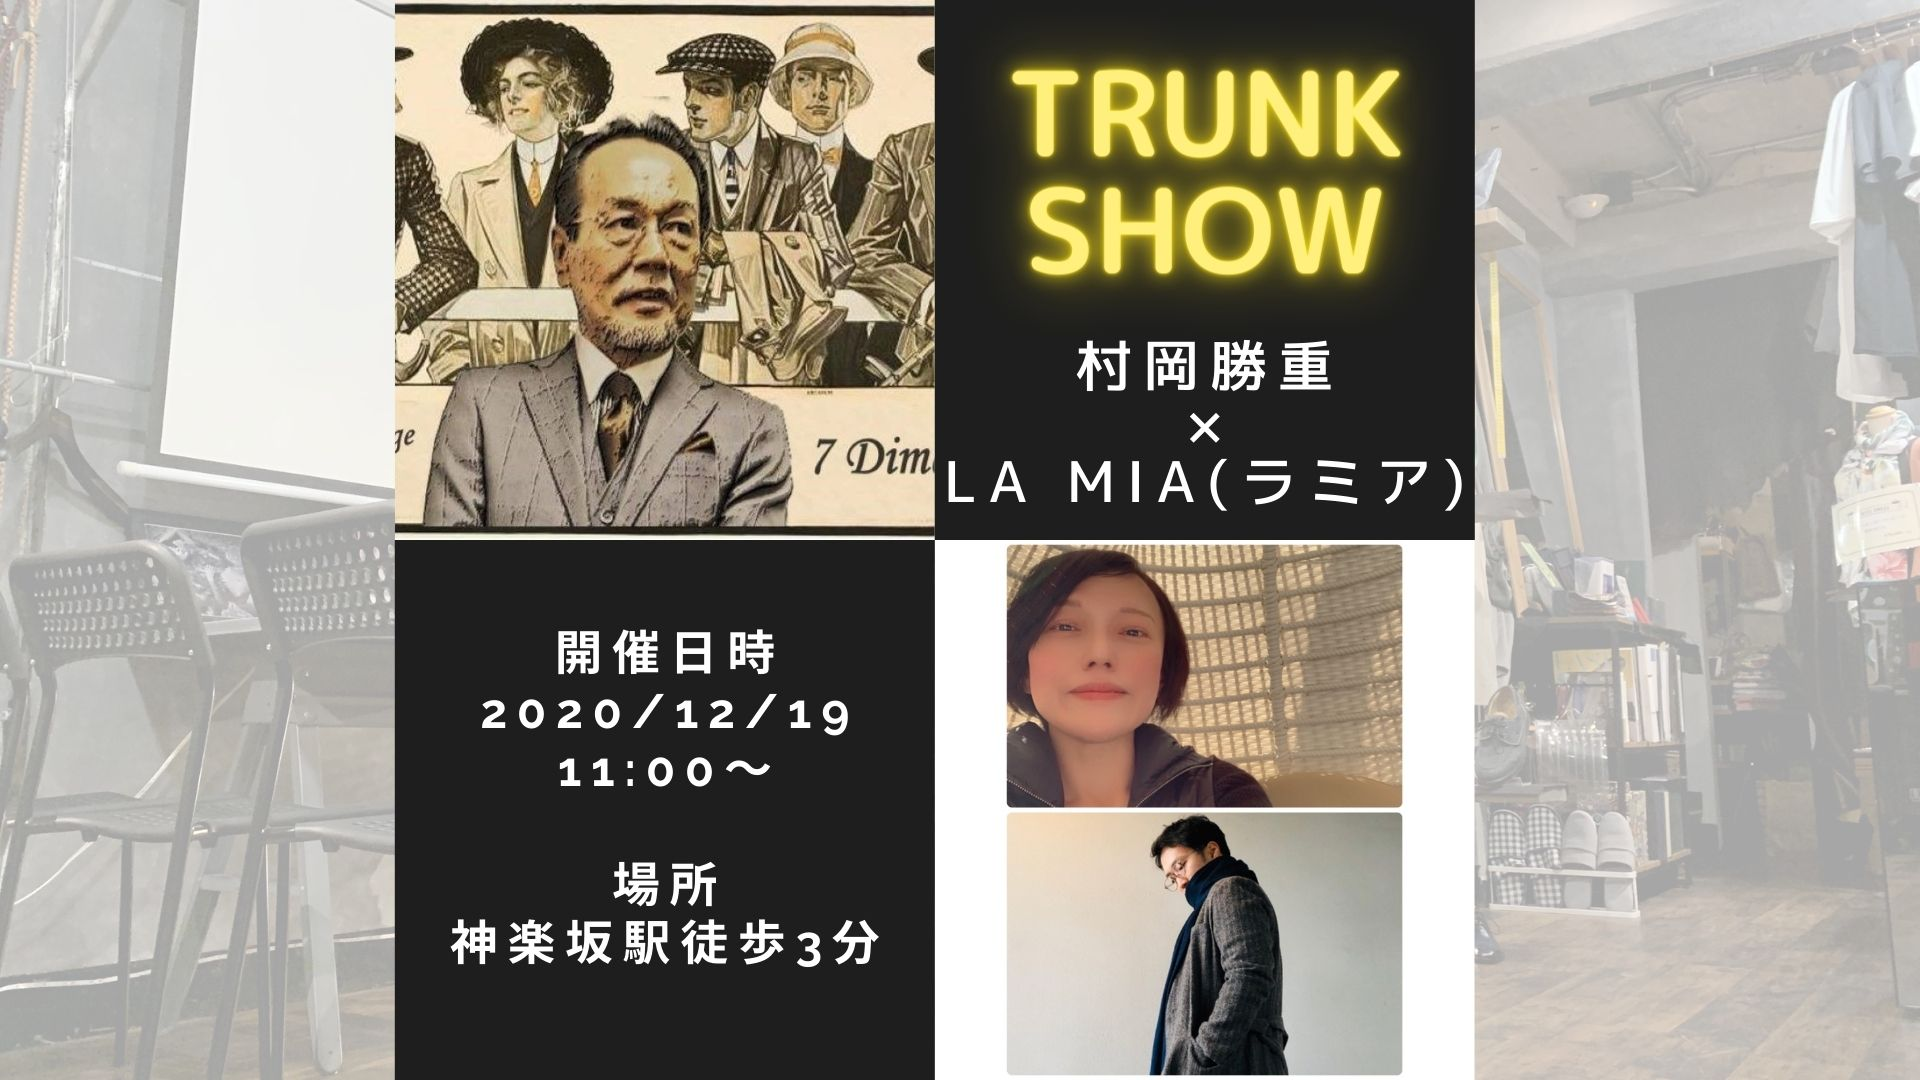 12/19  TRUNK SHOW at 神楽坂